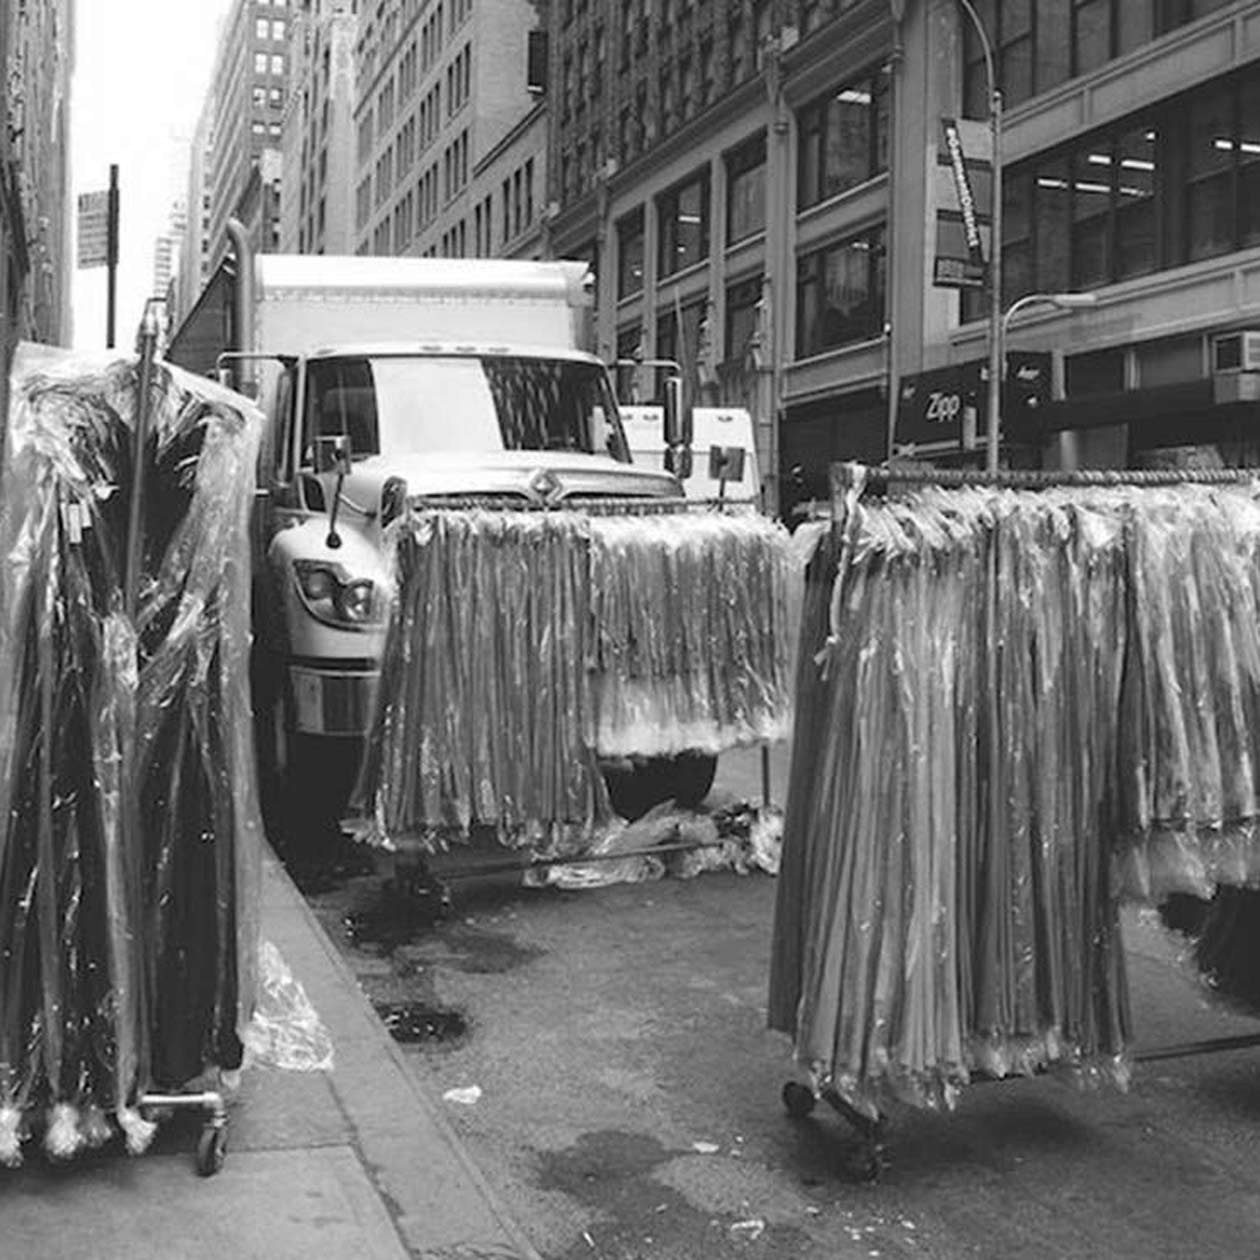 racks of clothes on the street in New York City's Garment District